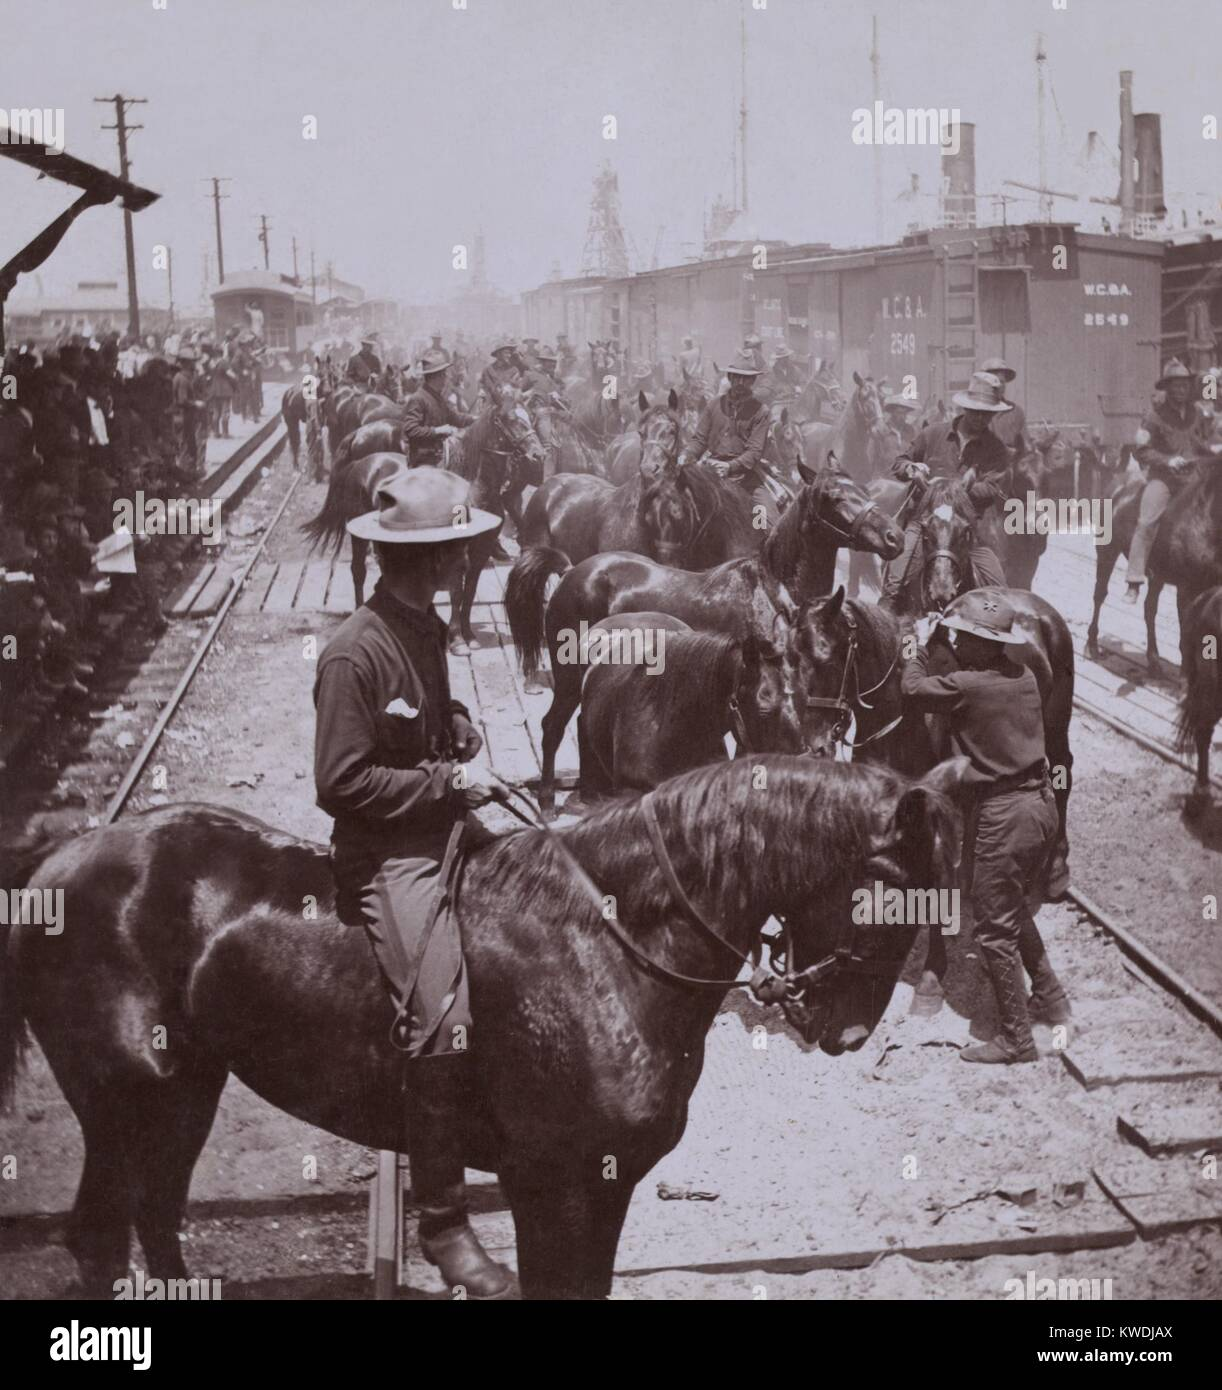 Rough Riders arrival at Tampa, Florida for transport to Cuba. Theodore Roosevelts 1st United States Volunteer Cavalry, - Stock Image